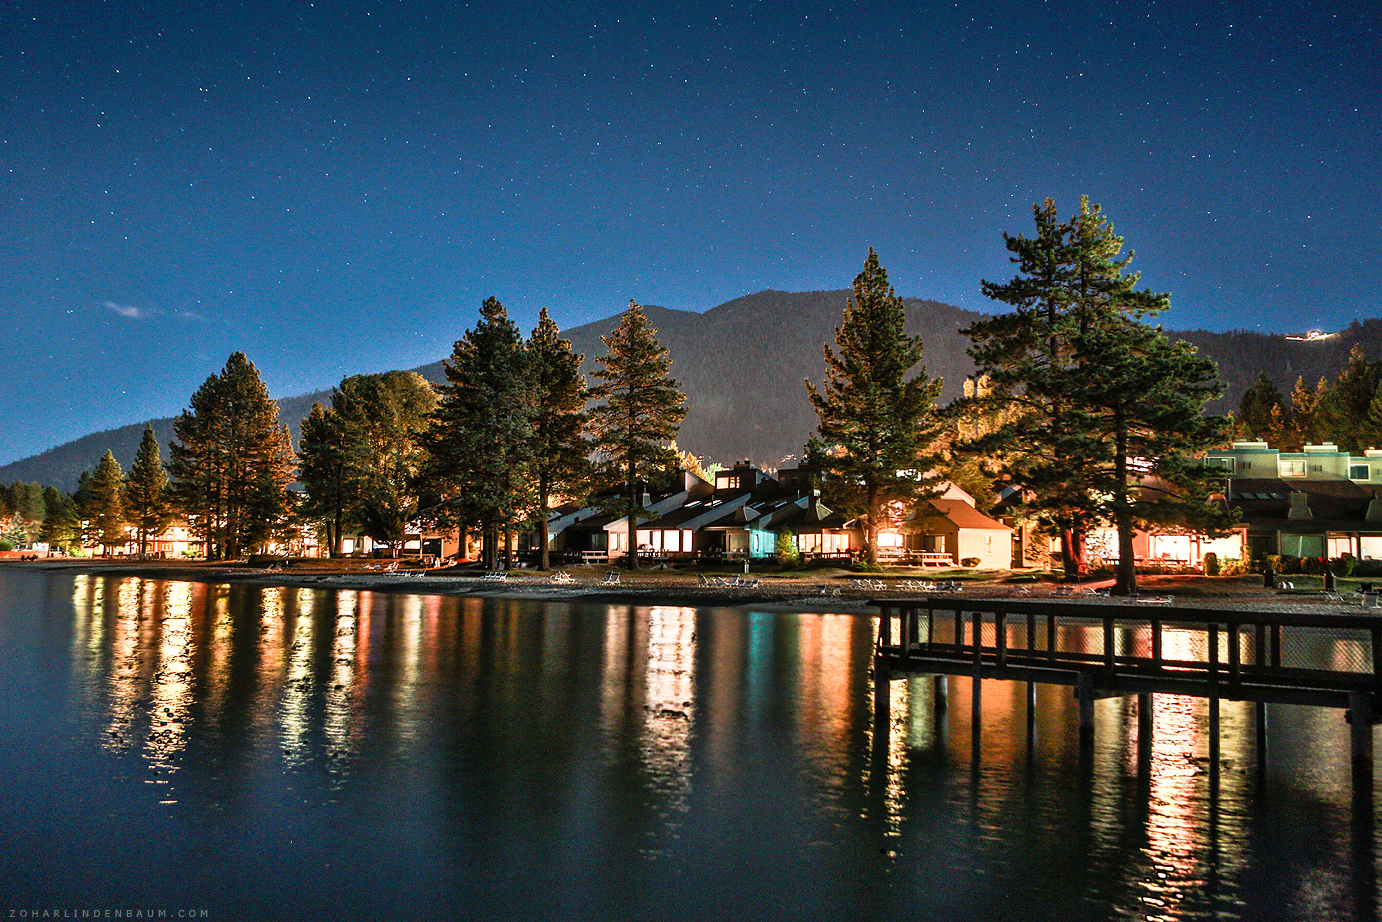 south lake tahoe christian dating site Tahoe south is your digital destination for south lake tahoe california vacation browse hotels, things to do, events and more in south lake tahoe south lake tahoe, ca offers adventure for the family in the summer and winter discover things to do, hotels and where to eat in south lake tahoe.